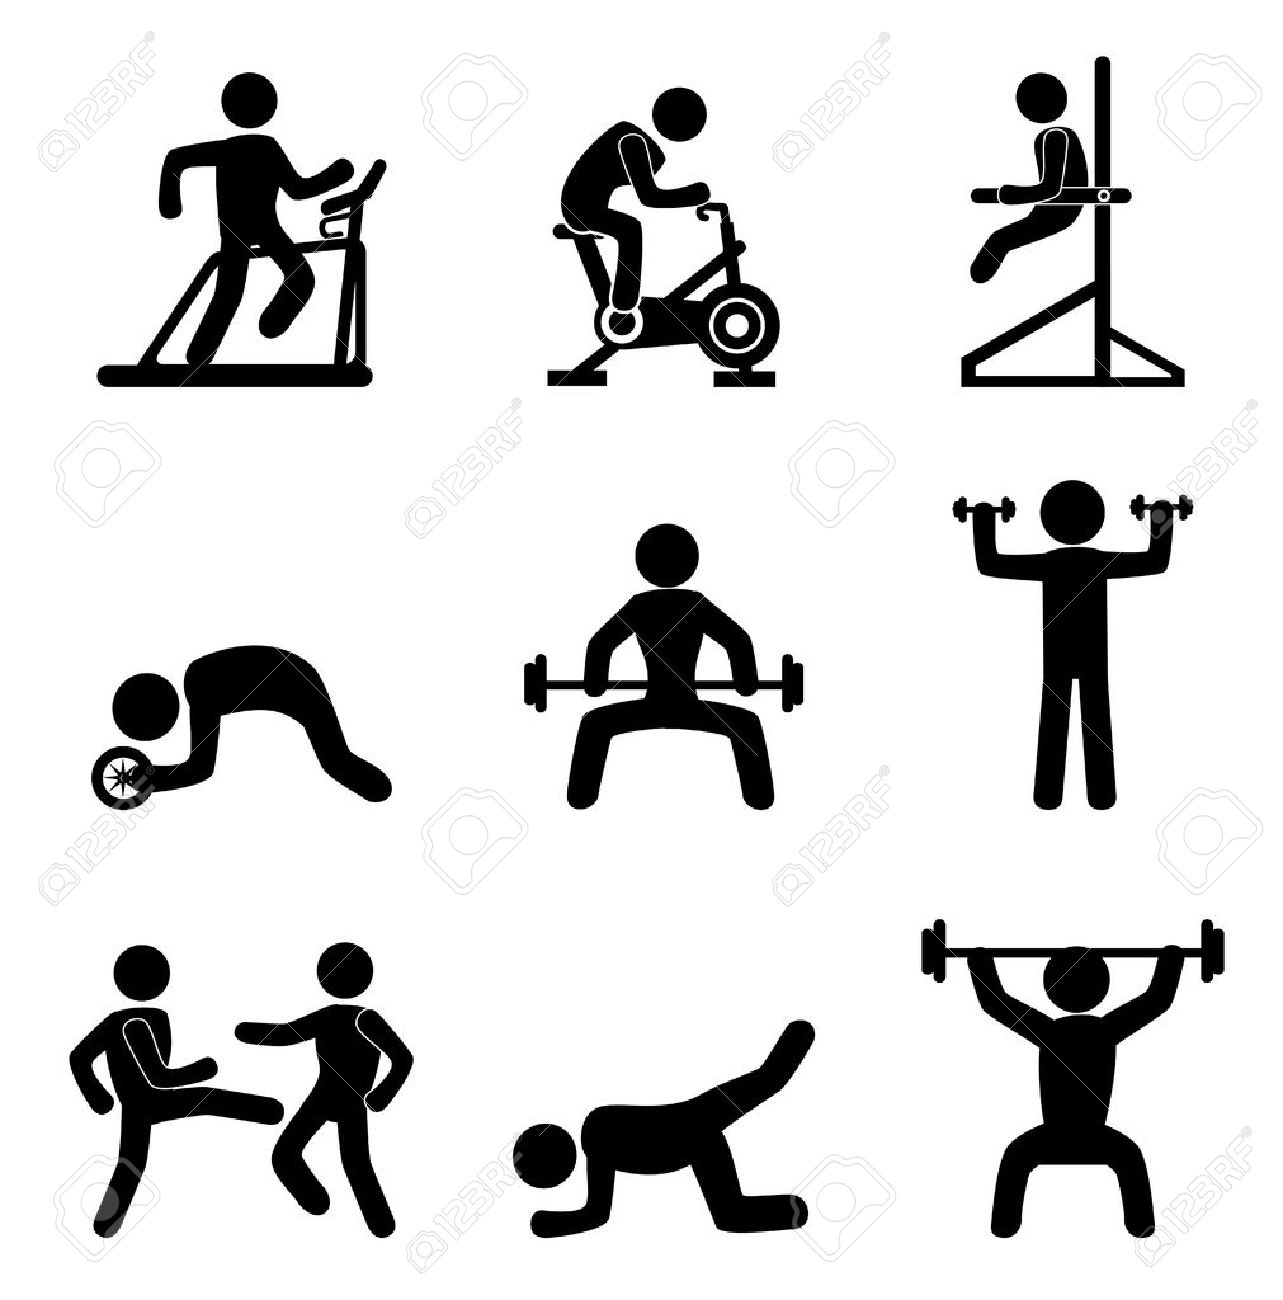 245 940 fitness stock illustrations cliparts and royalty free